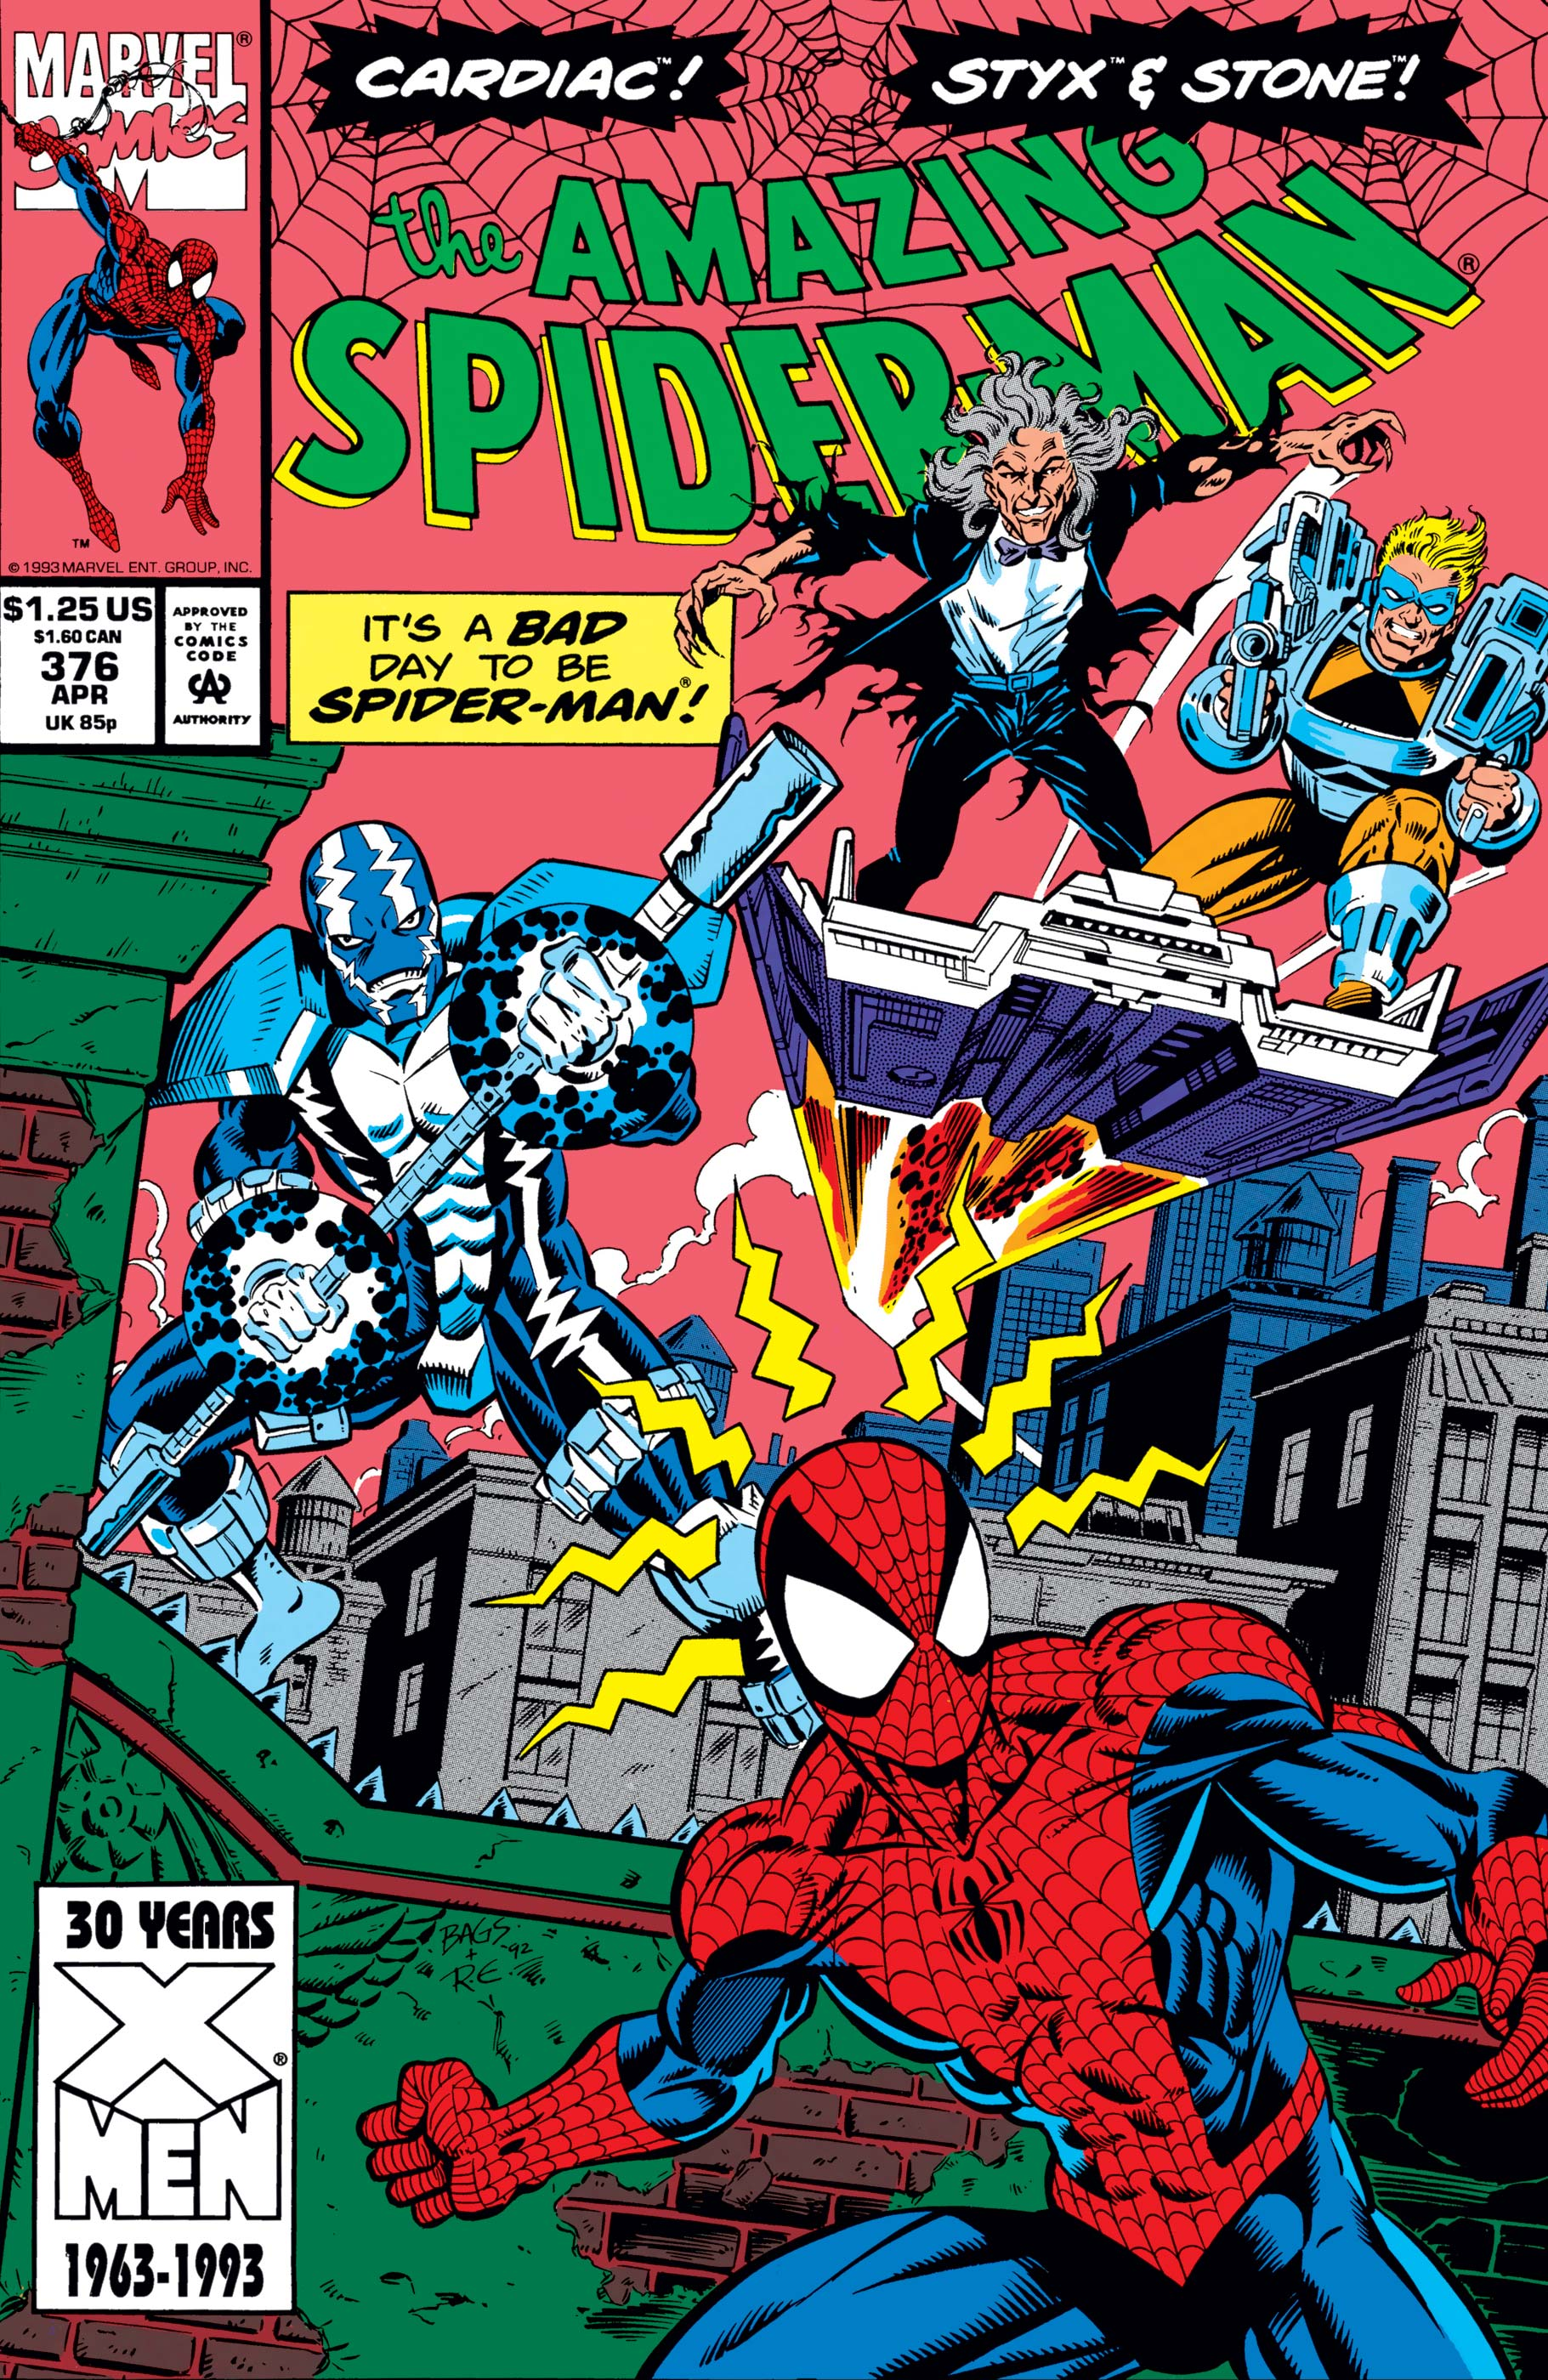 The Amazing Spider-Man (1963) #376